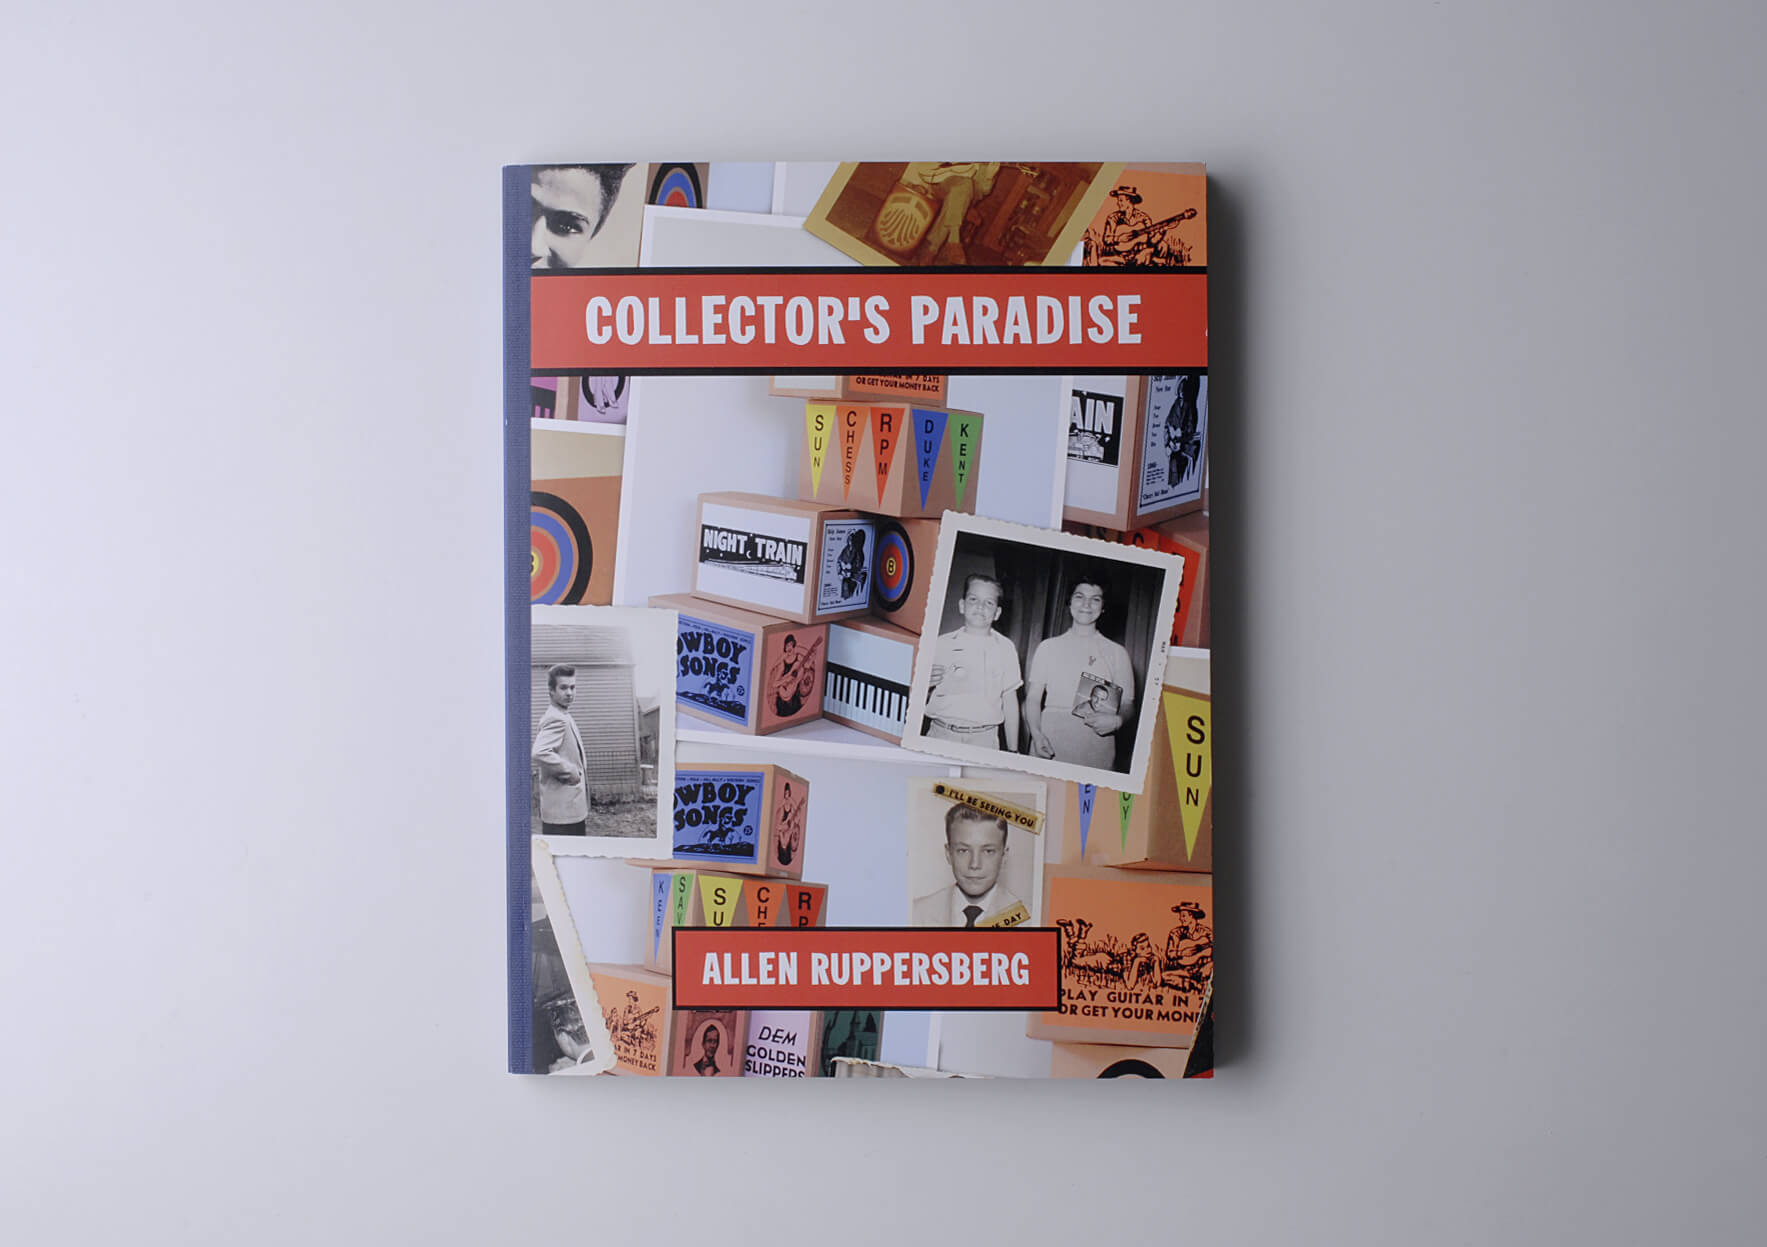   Collector's Paradise   ProjecteSD